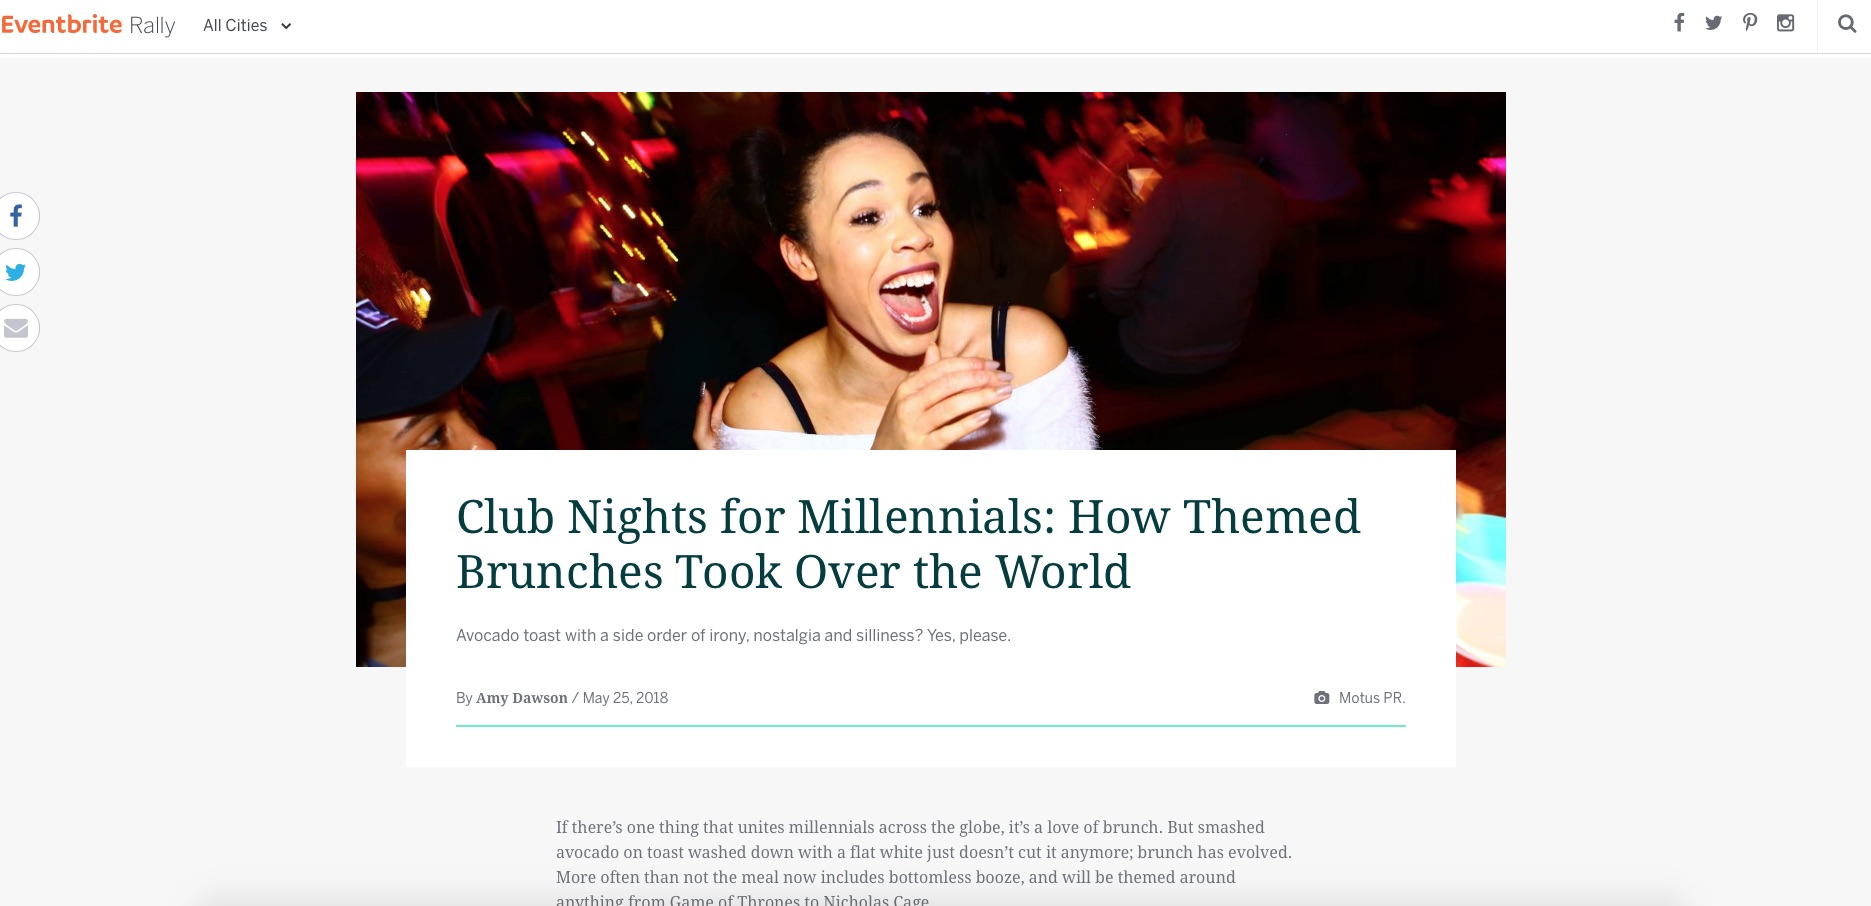 Club Nights for Millennials: How Themed Brunches Took Over the World (Eventbrite, 2nd Jun 2018)